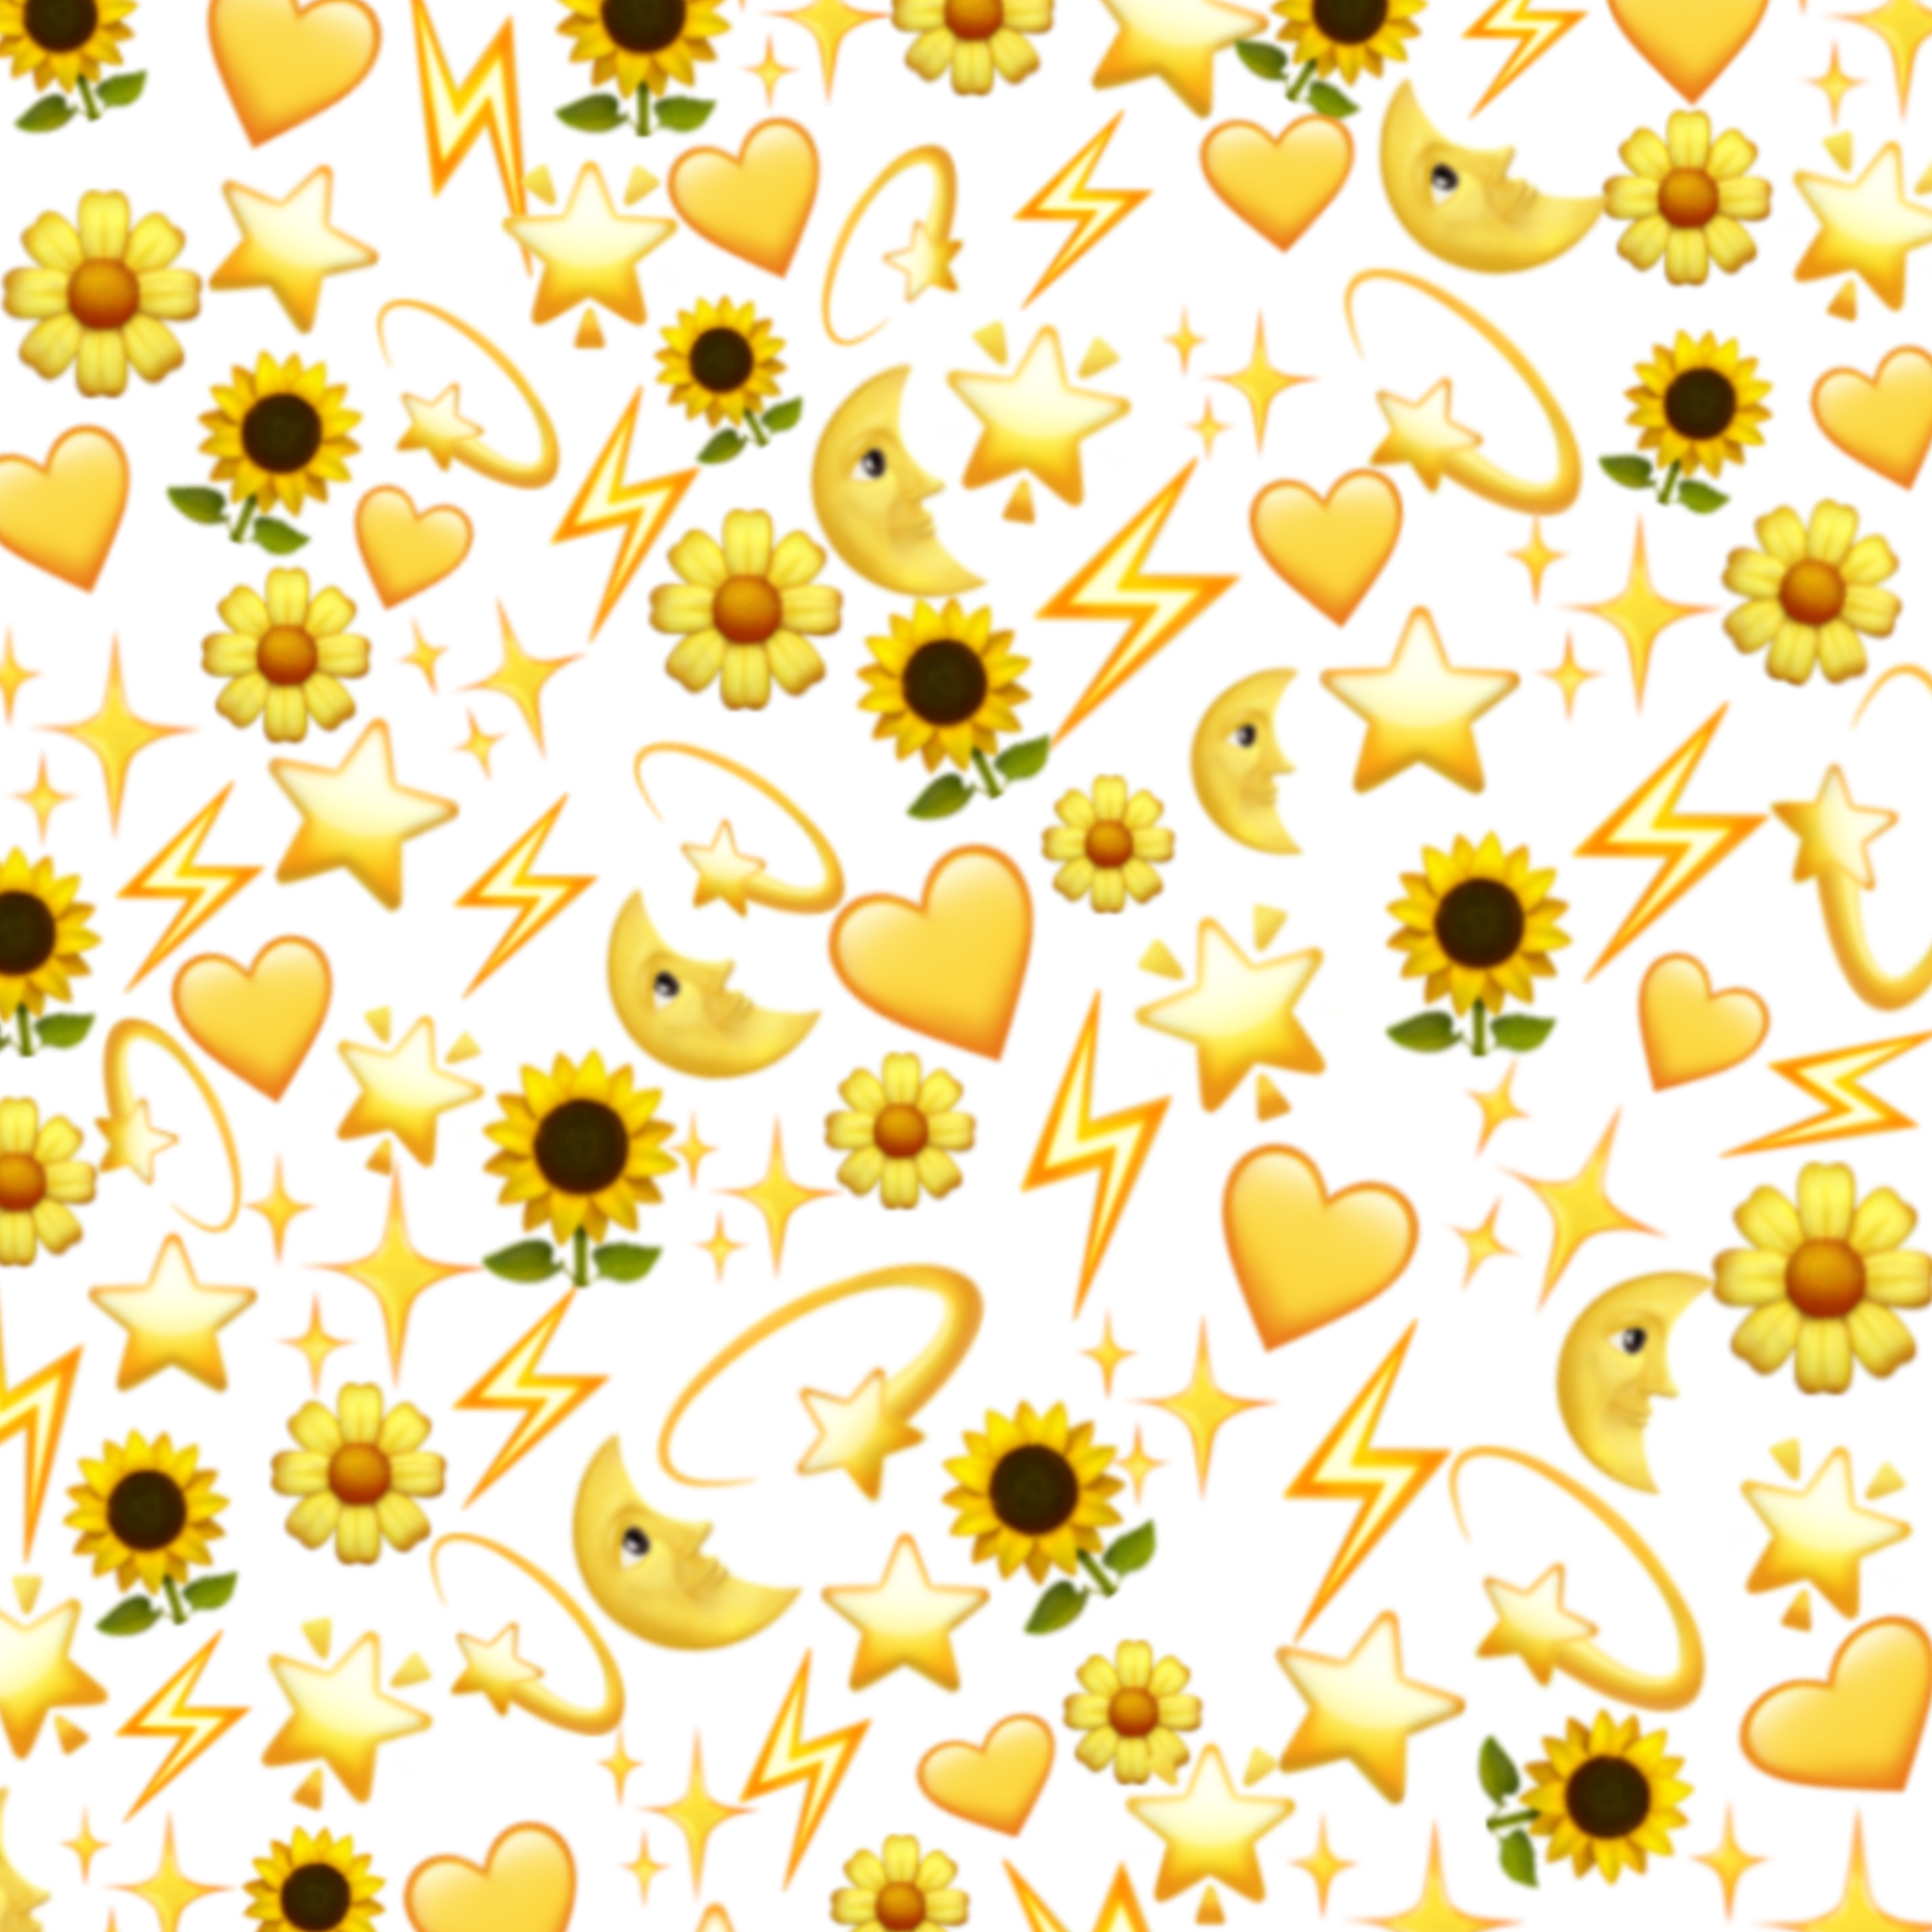 Freetoedit Yellow Black Moon Sunflower Aesthetic Background Remixed From Melissacamilo1 Cute Emoji Wallpaper Emoji Wallpaper Iphone Emoji Backgrounds